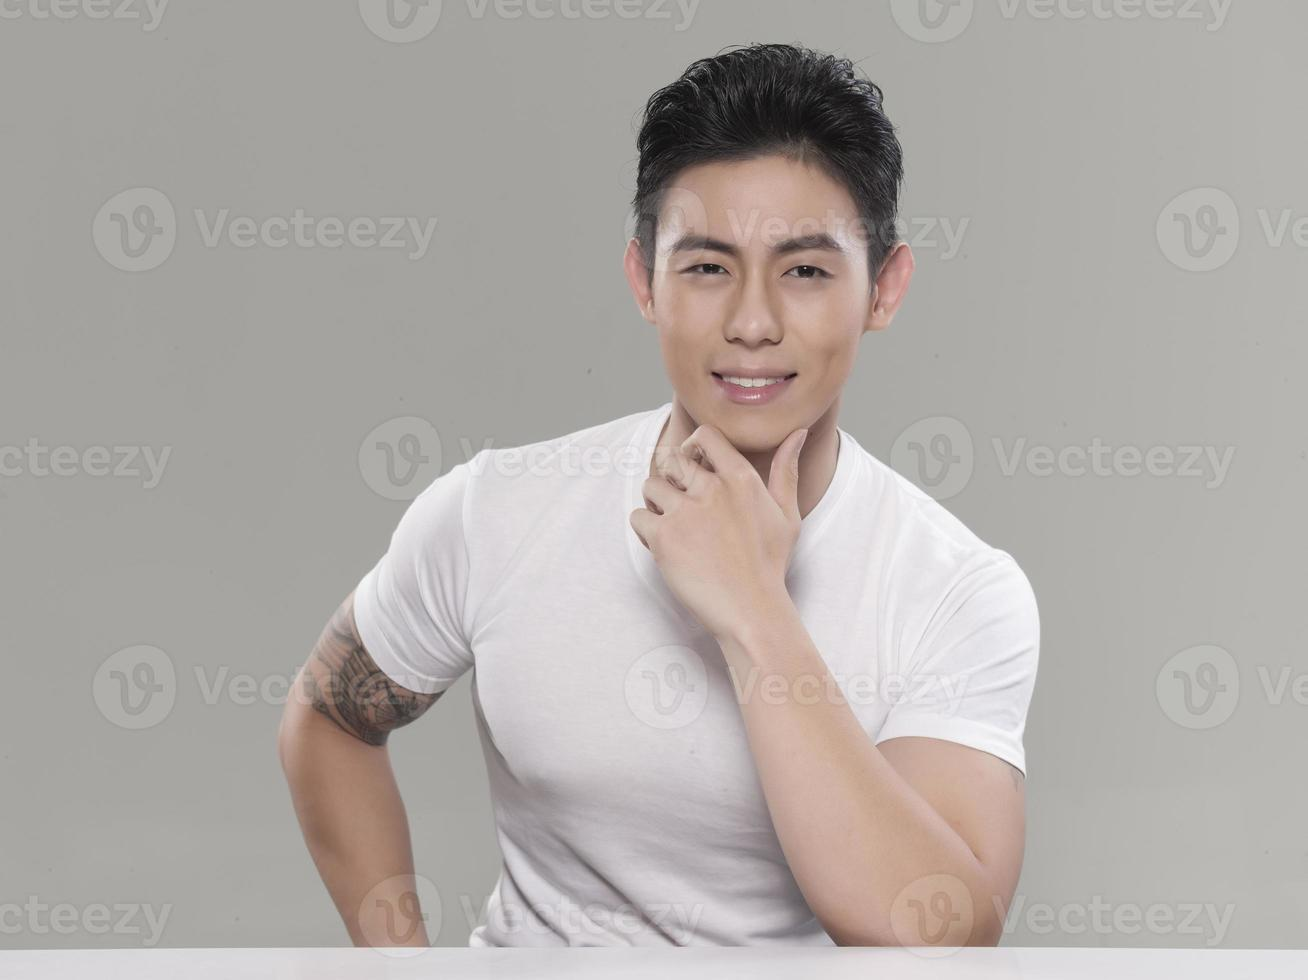 Asian Young Handsome Man Posing photo